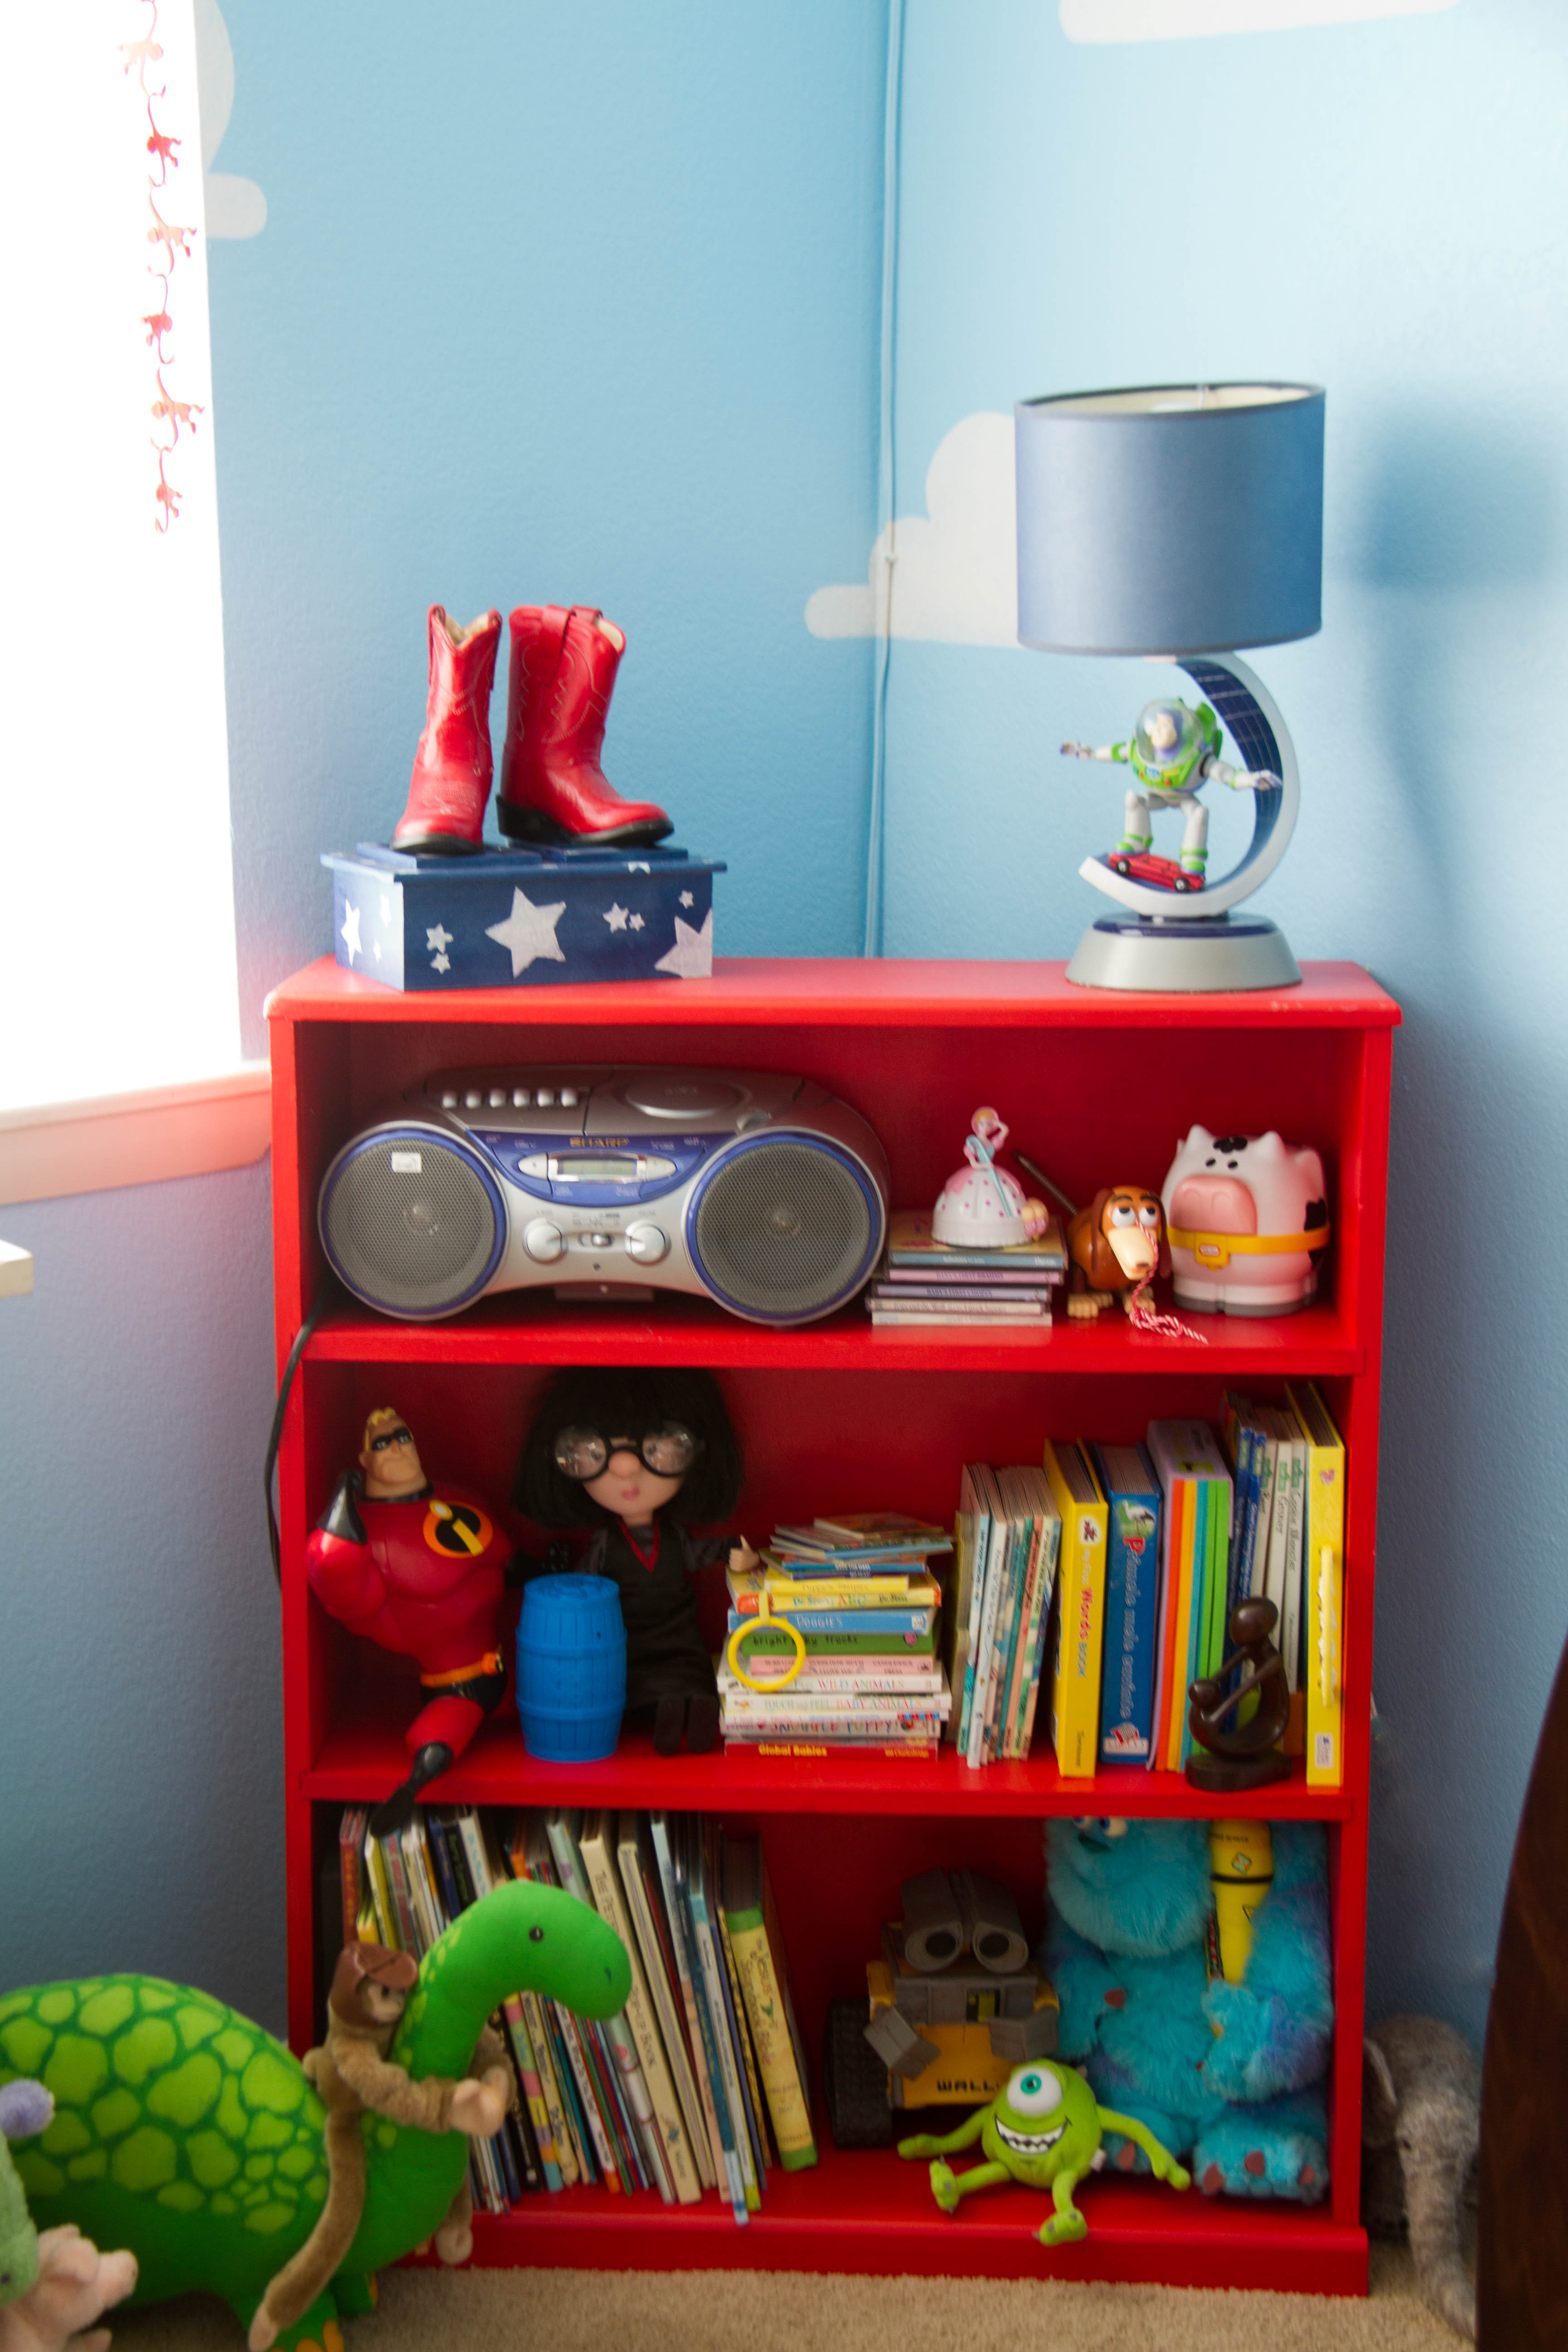 Bedroom Ideas: Toy Story Room Ideas By Living Lullaby Designs